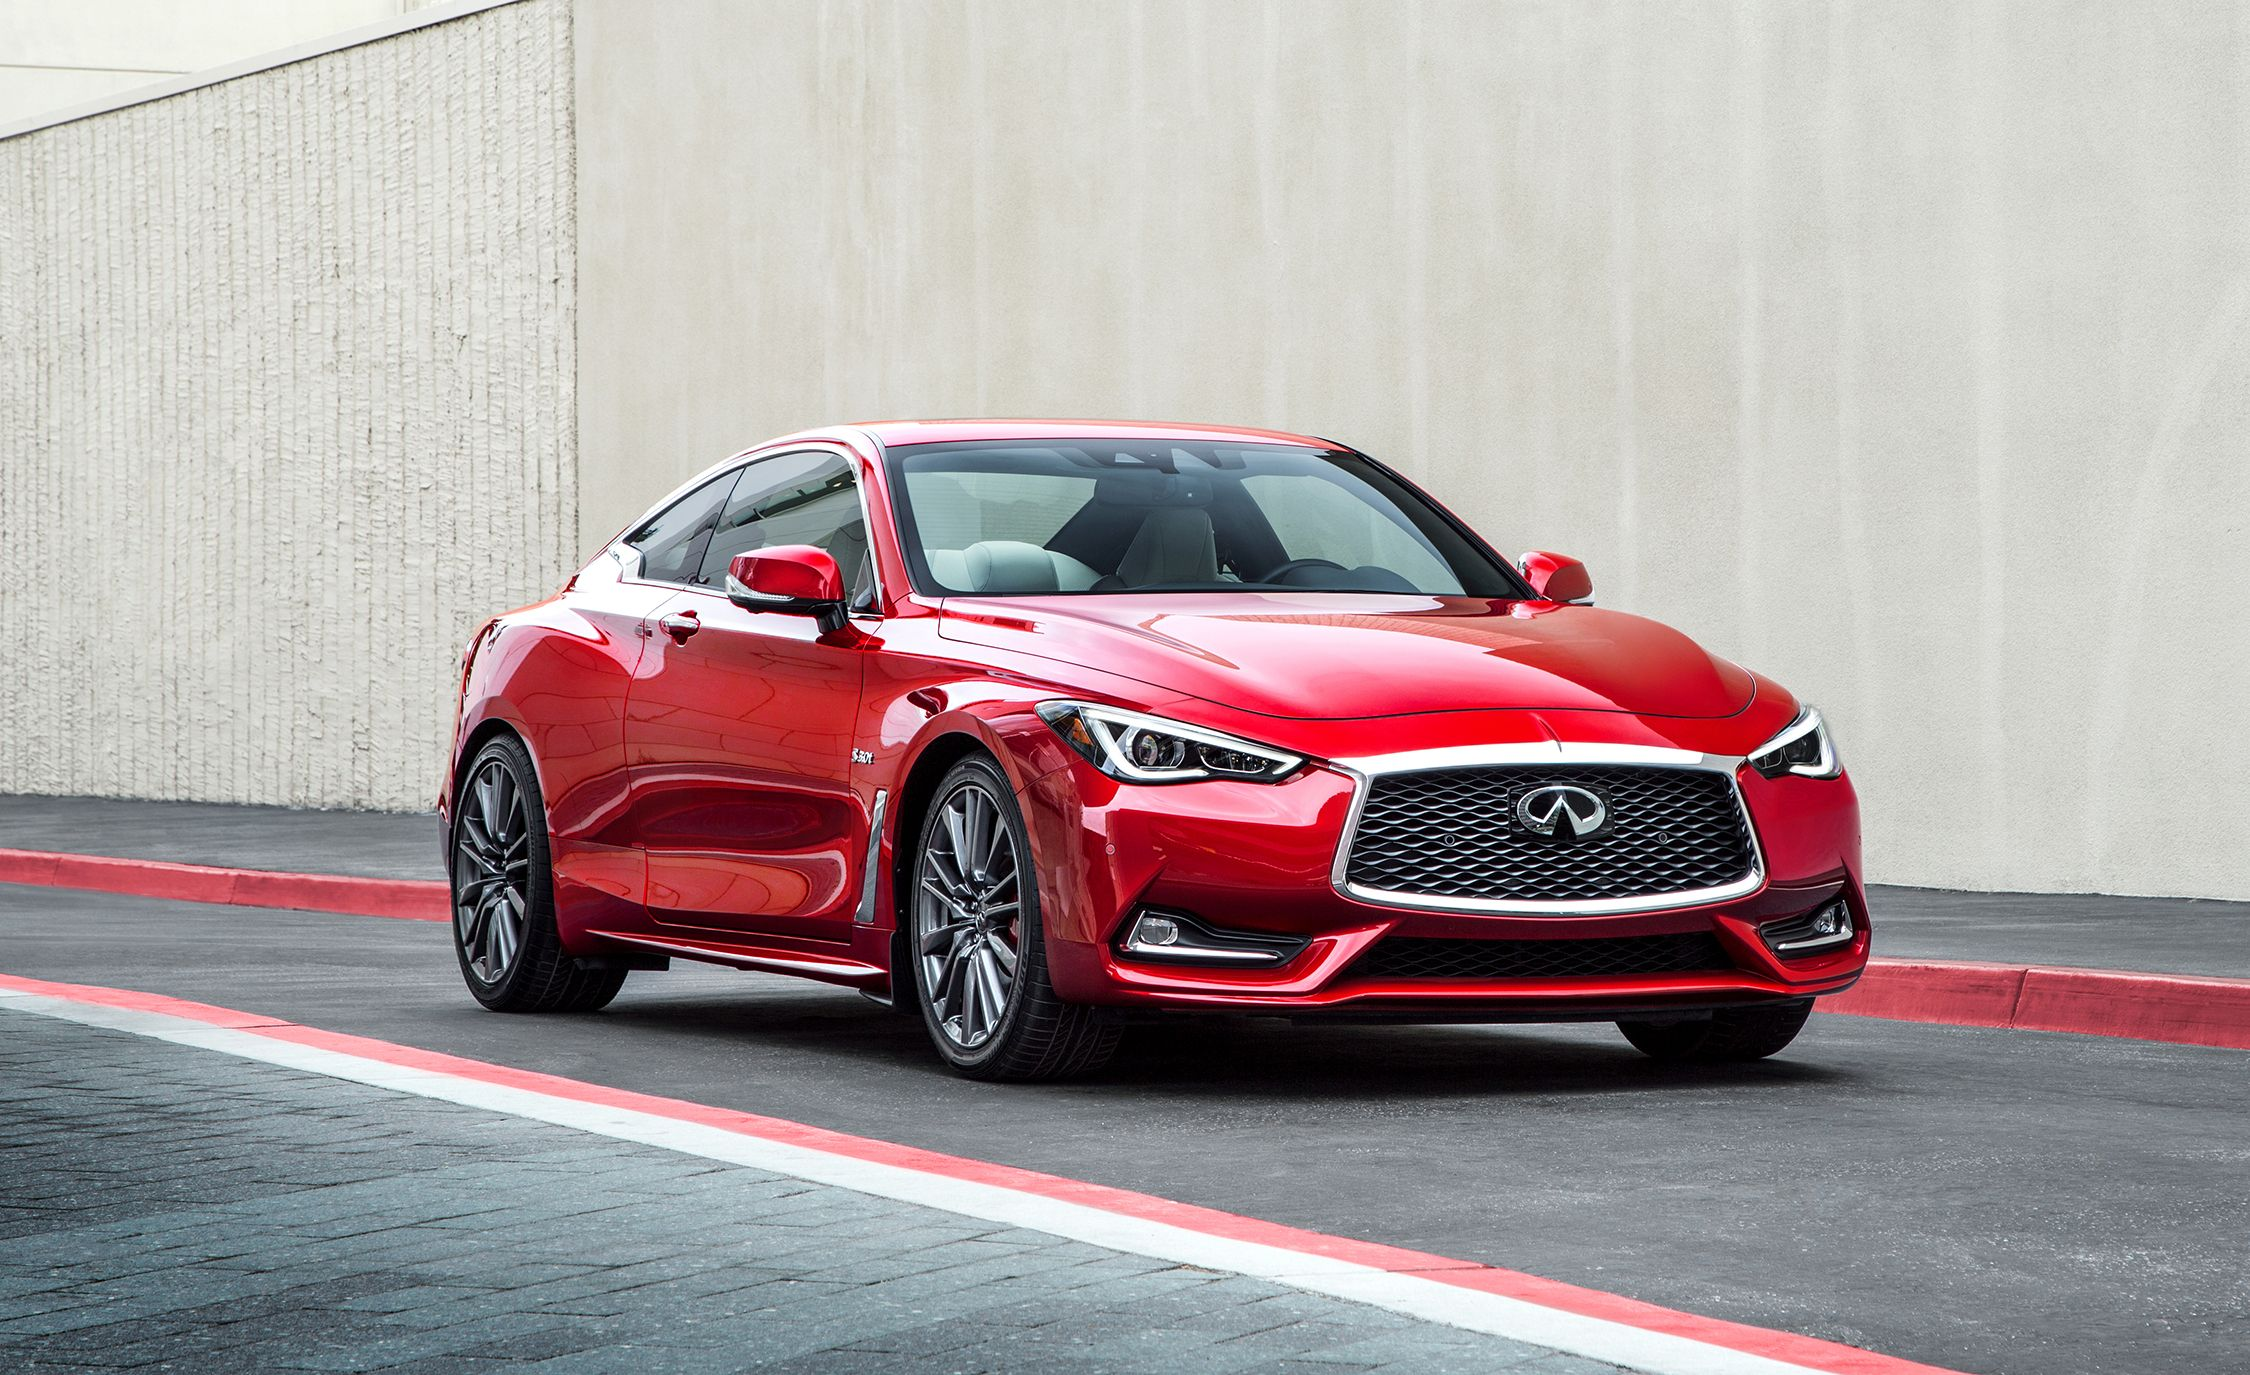 14. Infiniti Q60 Everything said about the four-door Infiniti Q50 applies to the two-door Infiniti Q60 coupe . Also, the Q60 is even better looking—it easily is one of the best-looking cars in the entry-luxe segment, with more rakishness than the Q50 sedan.